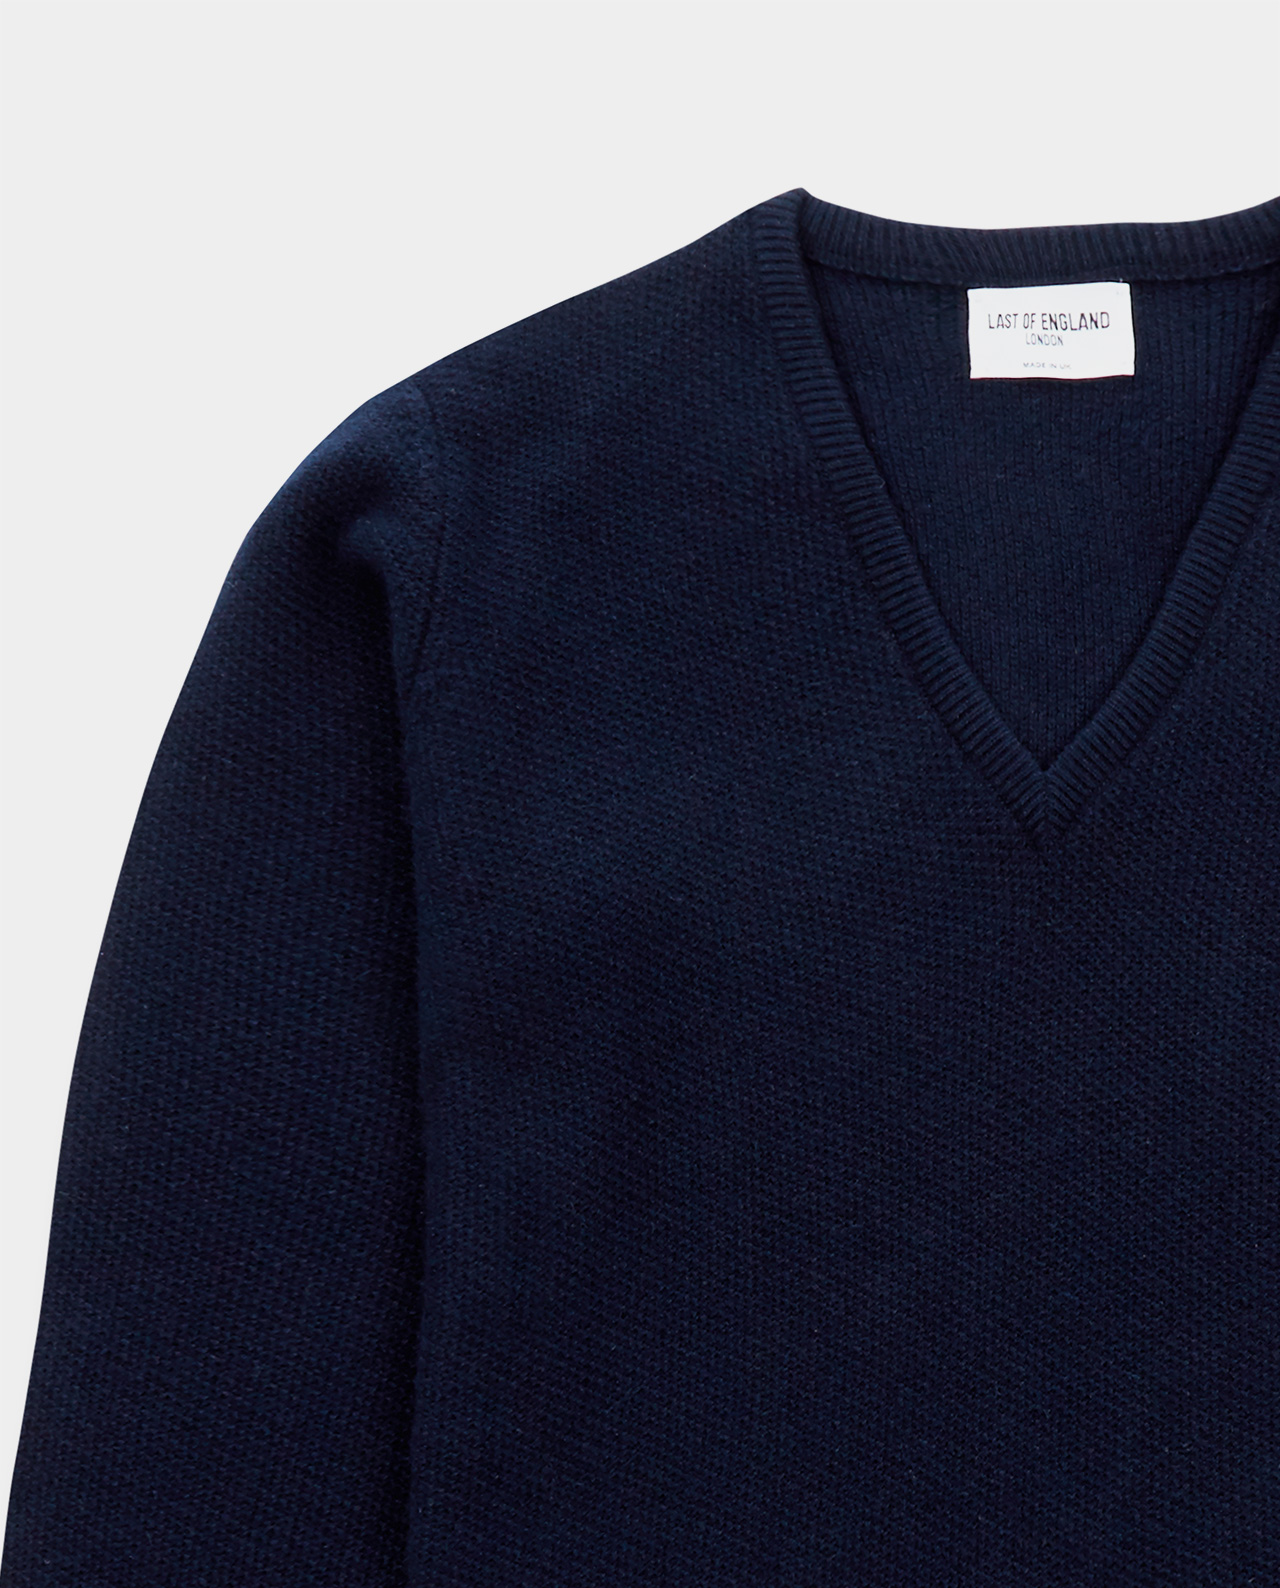 Last of England Honeycomb Stitch Navy Jumper